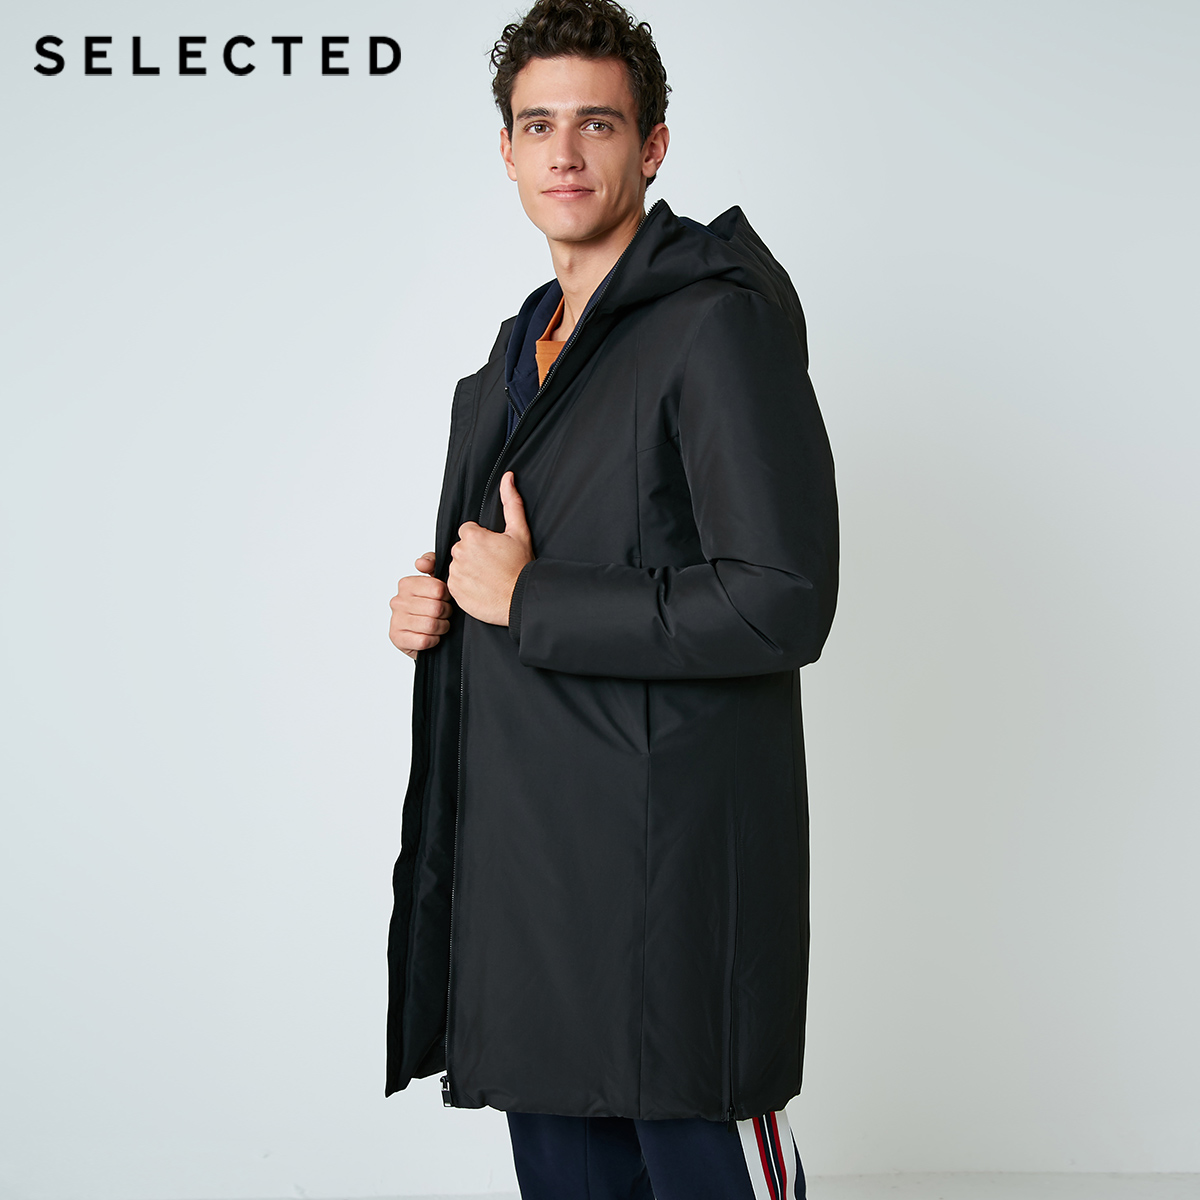 SELECTED Men's Down Jacket Medium-long Style Hooded Duck Parka Coat Winter Clothes S|418412507